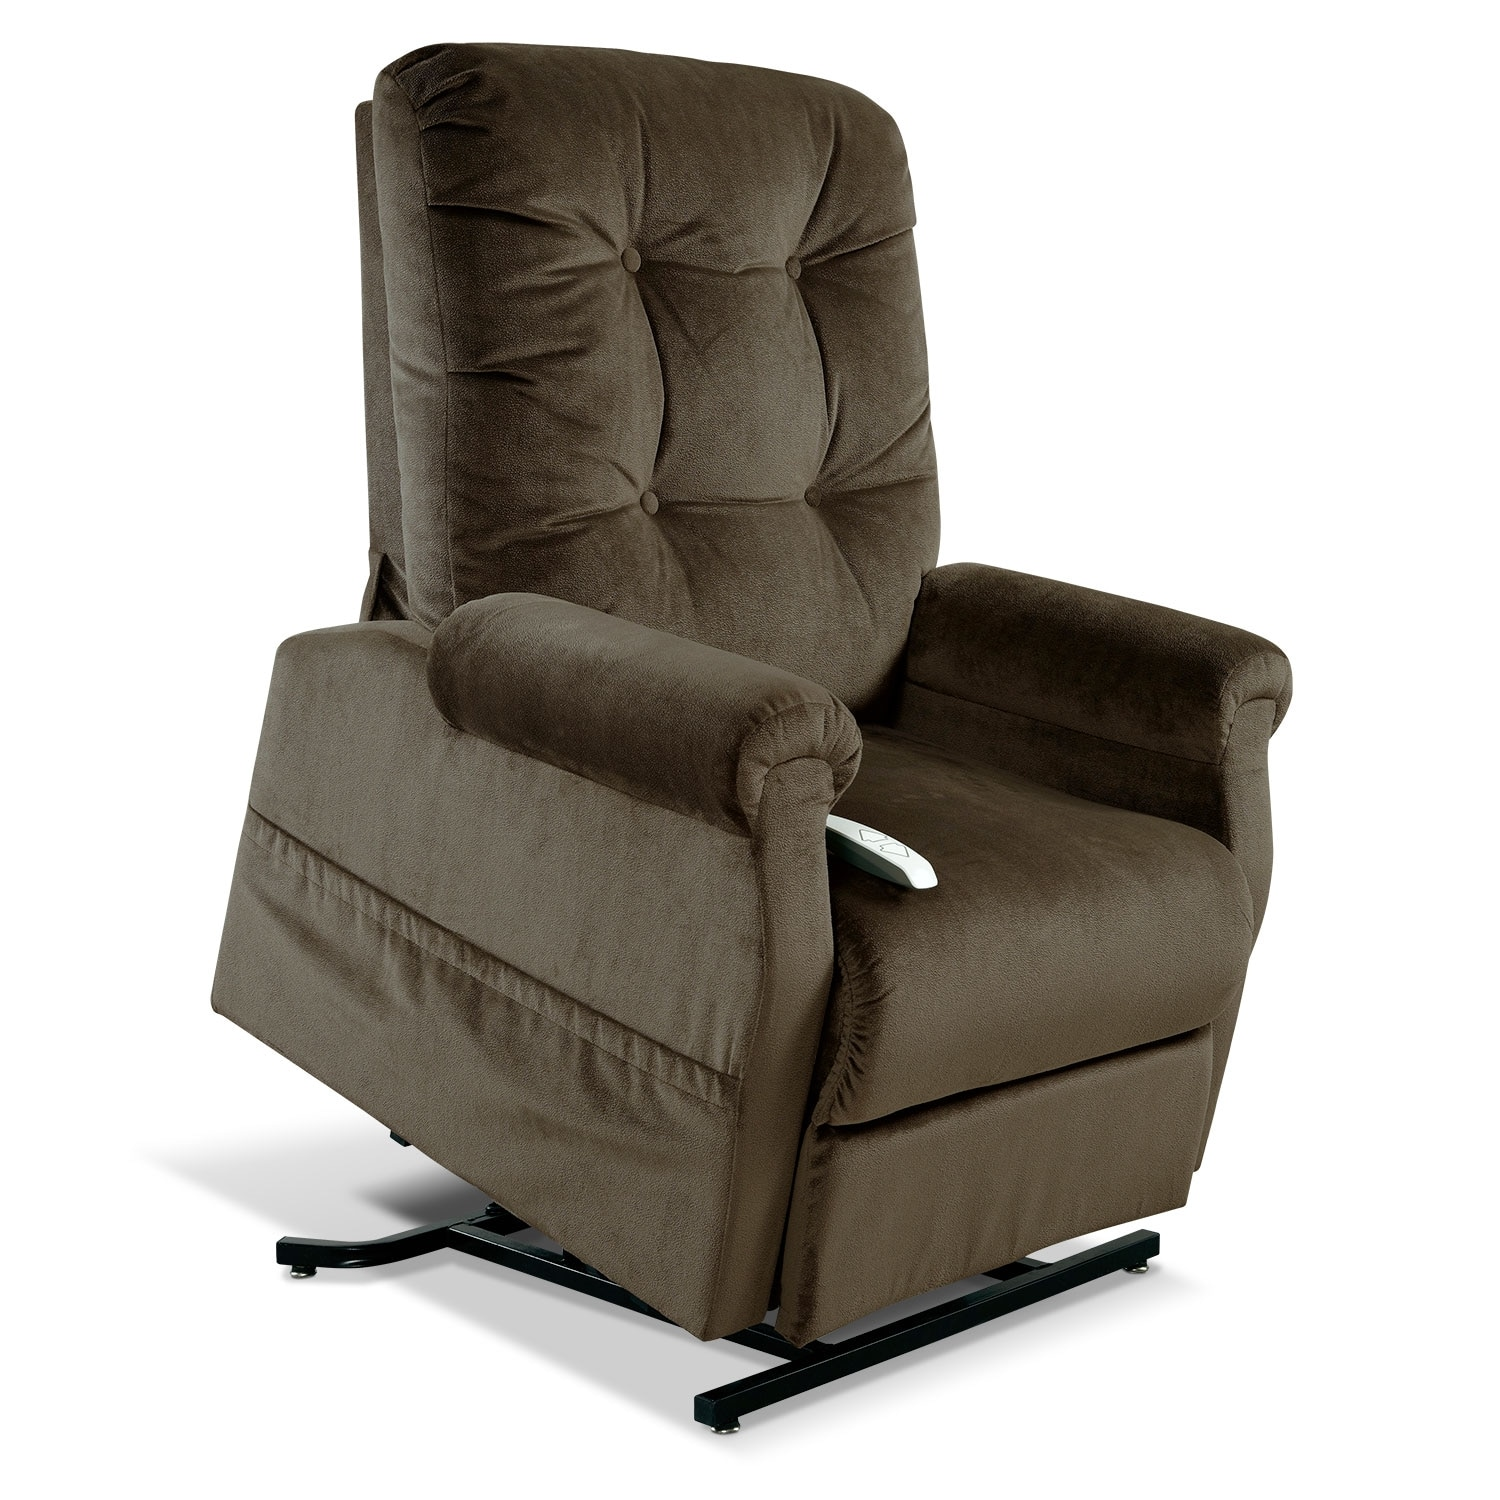 Living Room Furniture - Elmer Lift Chair